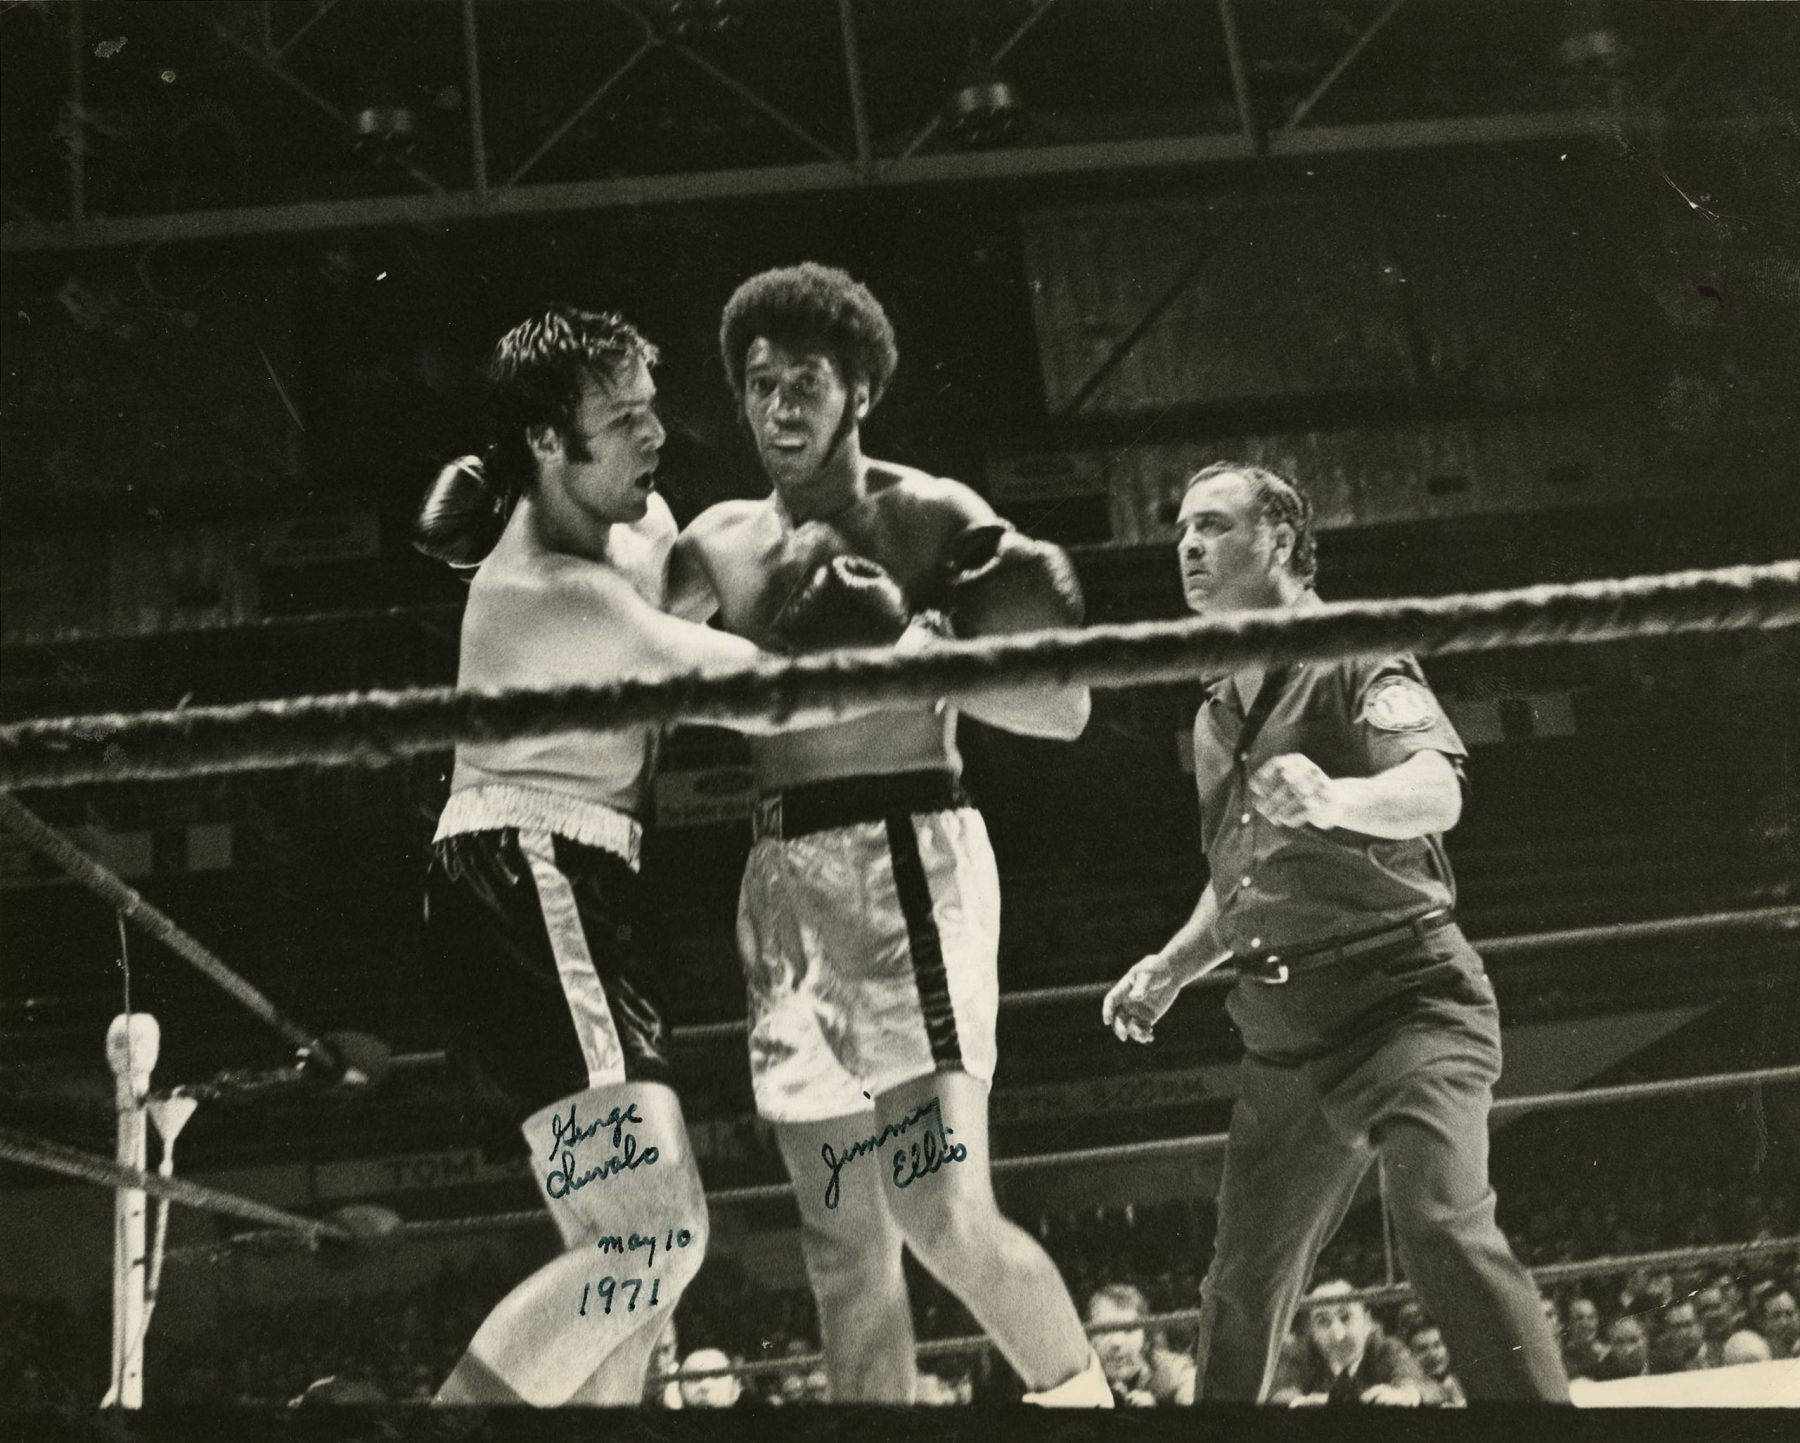 Sammy Luftspring refereeing a fight between George Chuvalo, a Canadian professional boxer and heavyweight champion, and Jimmy Ellis, an American professional boxer. The fight took place on 10 May 1971 at Maple Leaf Gardens.   OJA, fonds 82, item 30.